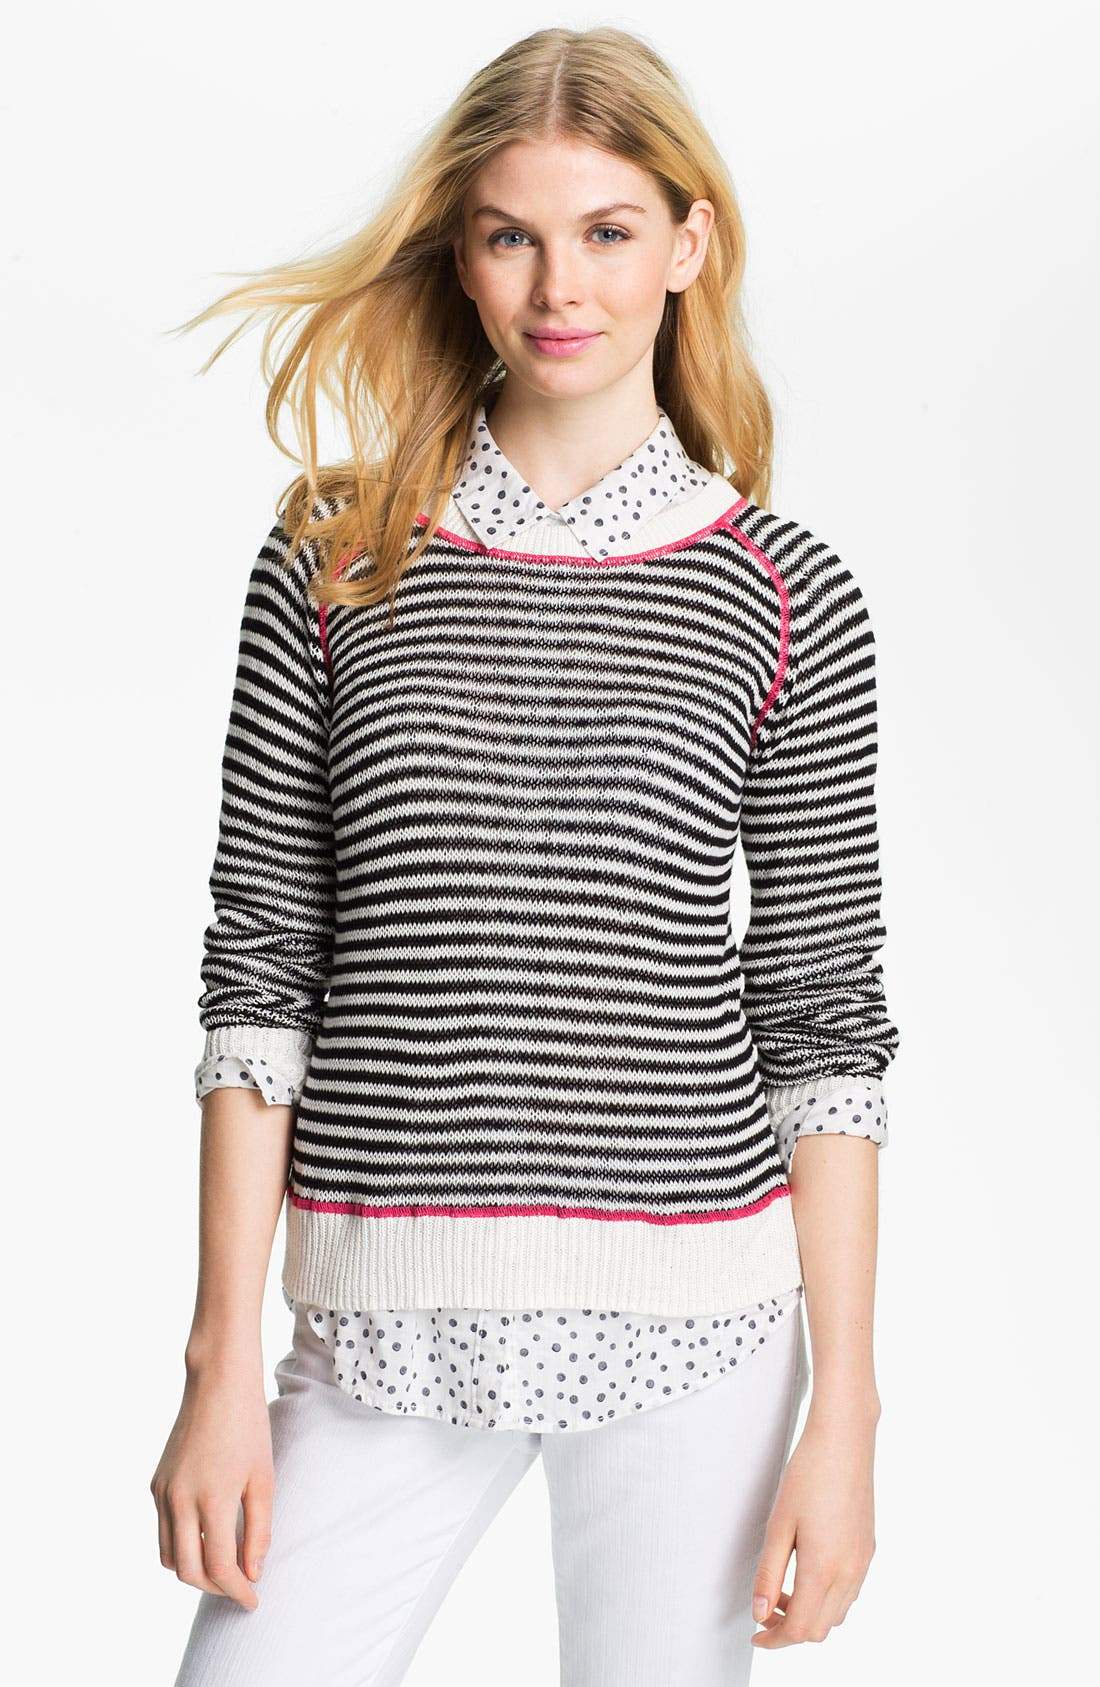 Alternate Image 1 Selected - Caslon® Contrast Stitch Crewneck Sweater